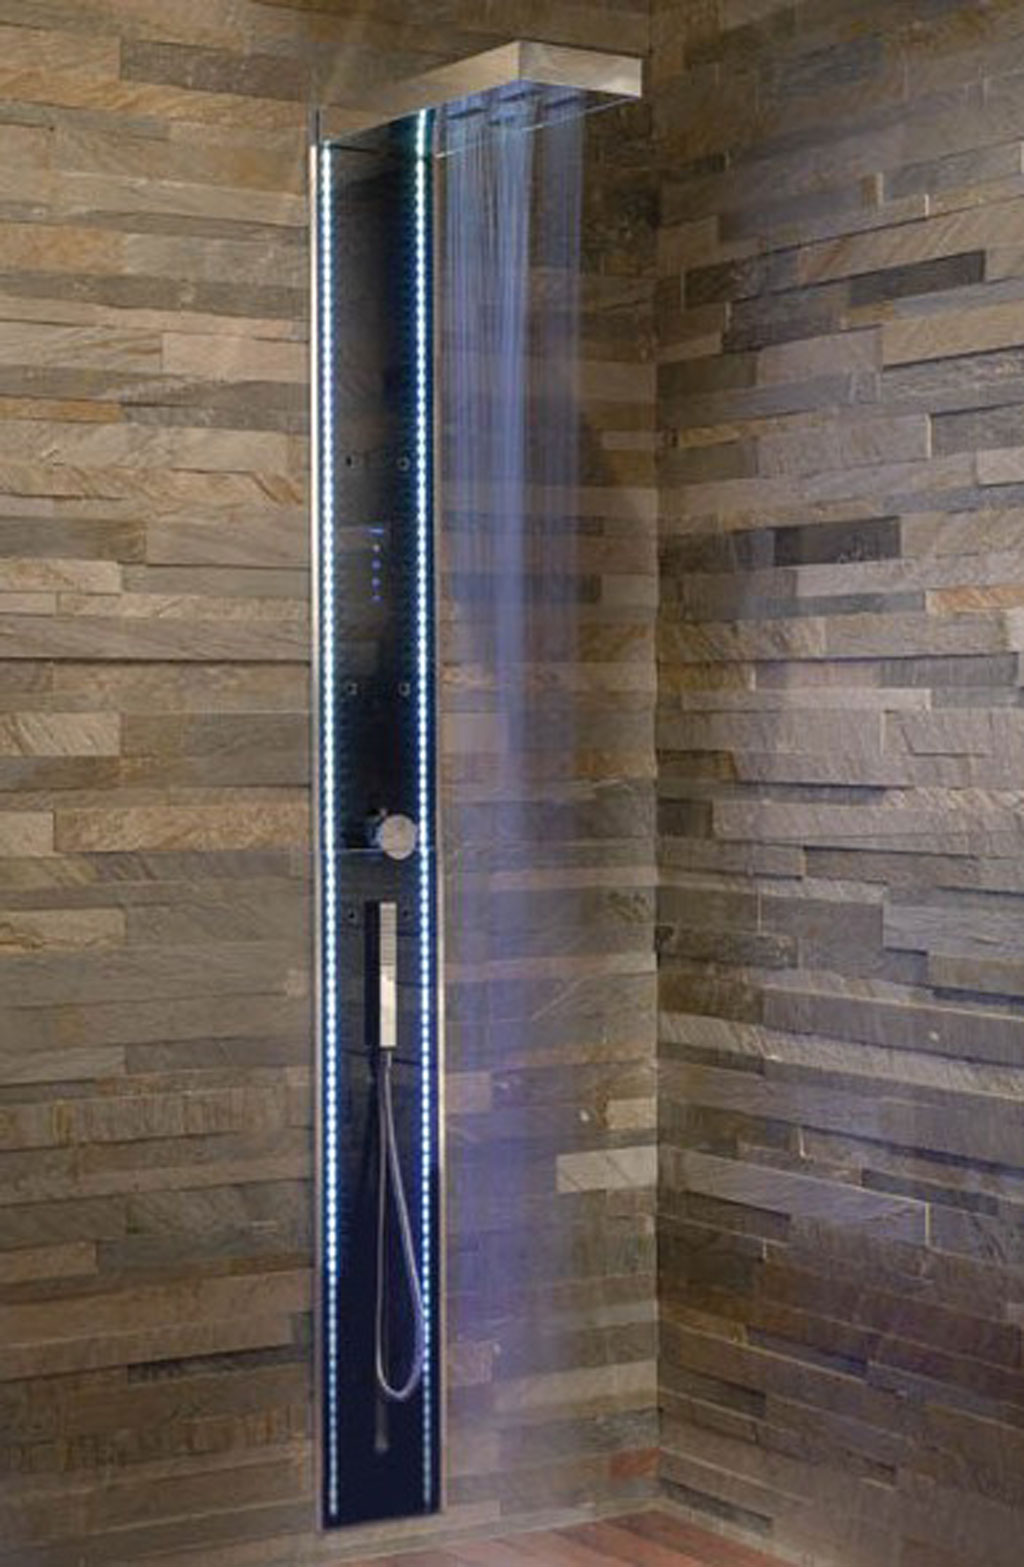 bathroom tile designs intended for modern tile designs - Modern Bathroom Tile Designs